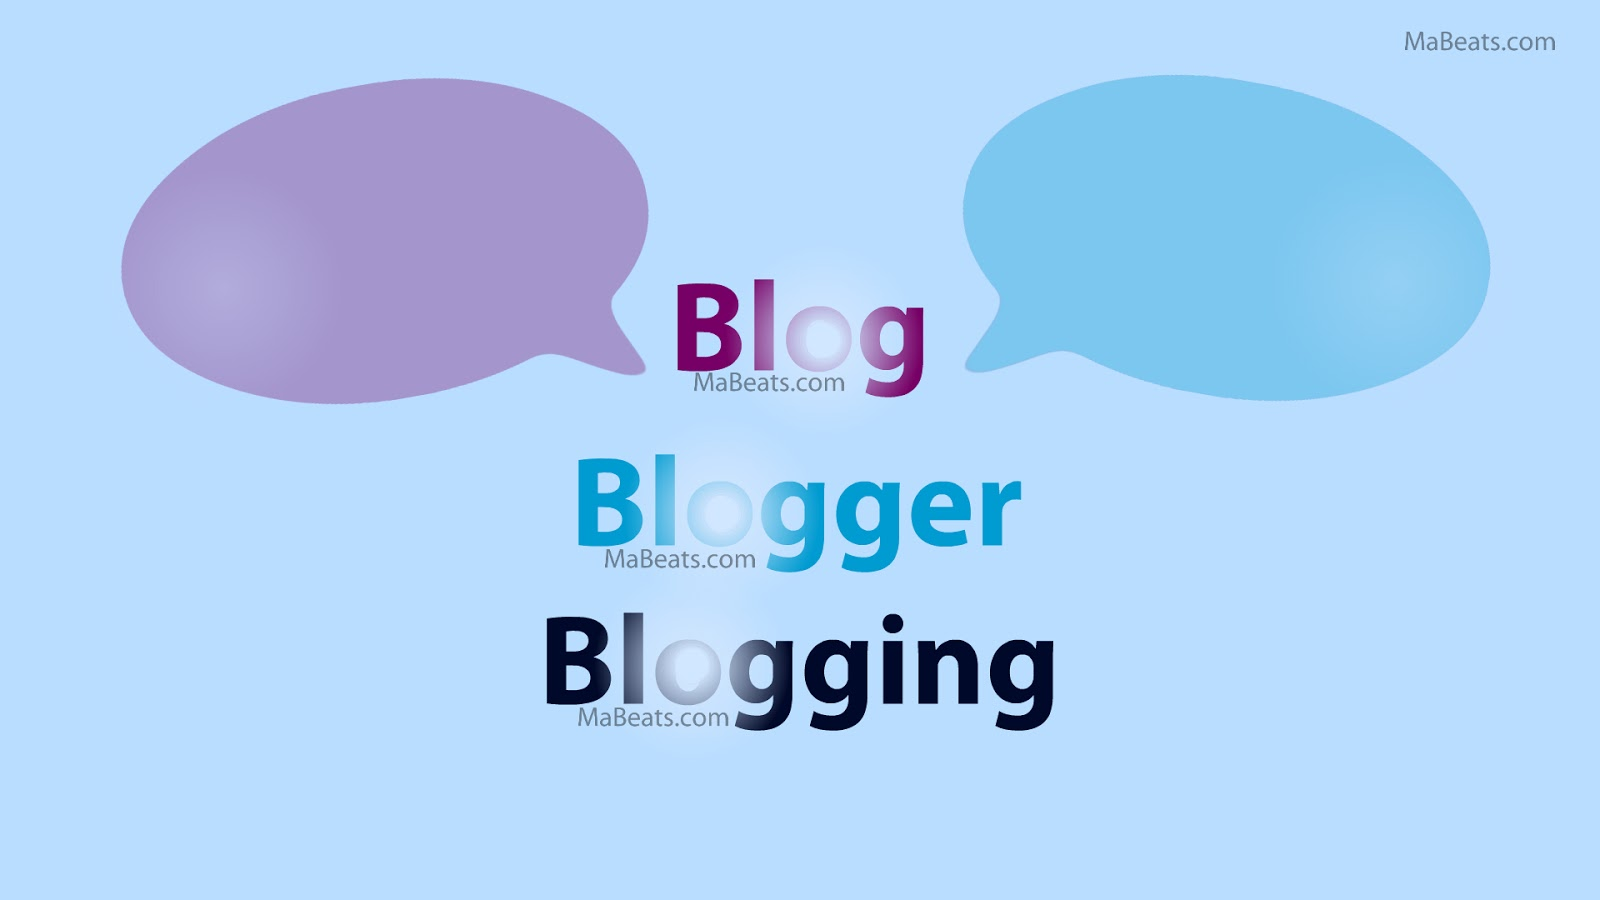 Blogging, blog, blogger